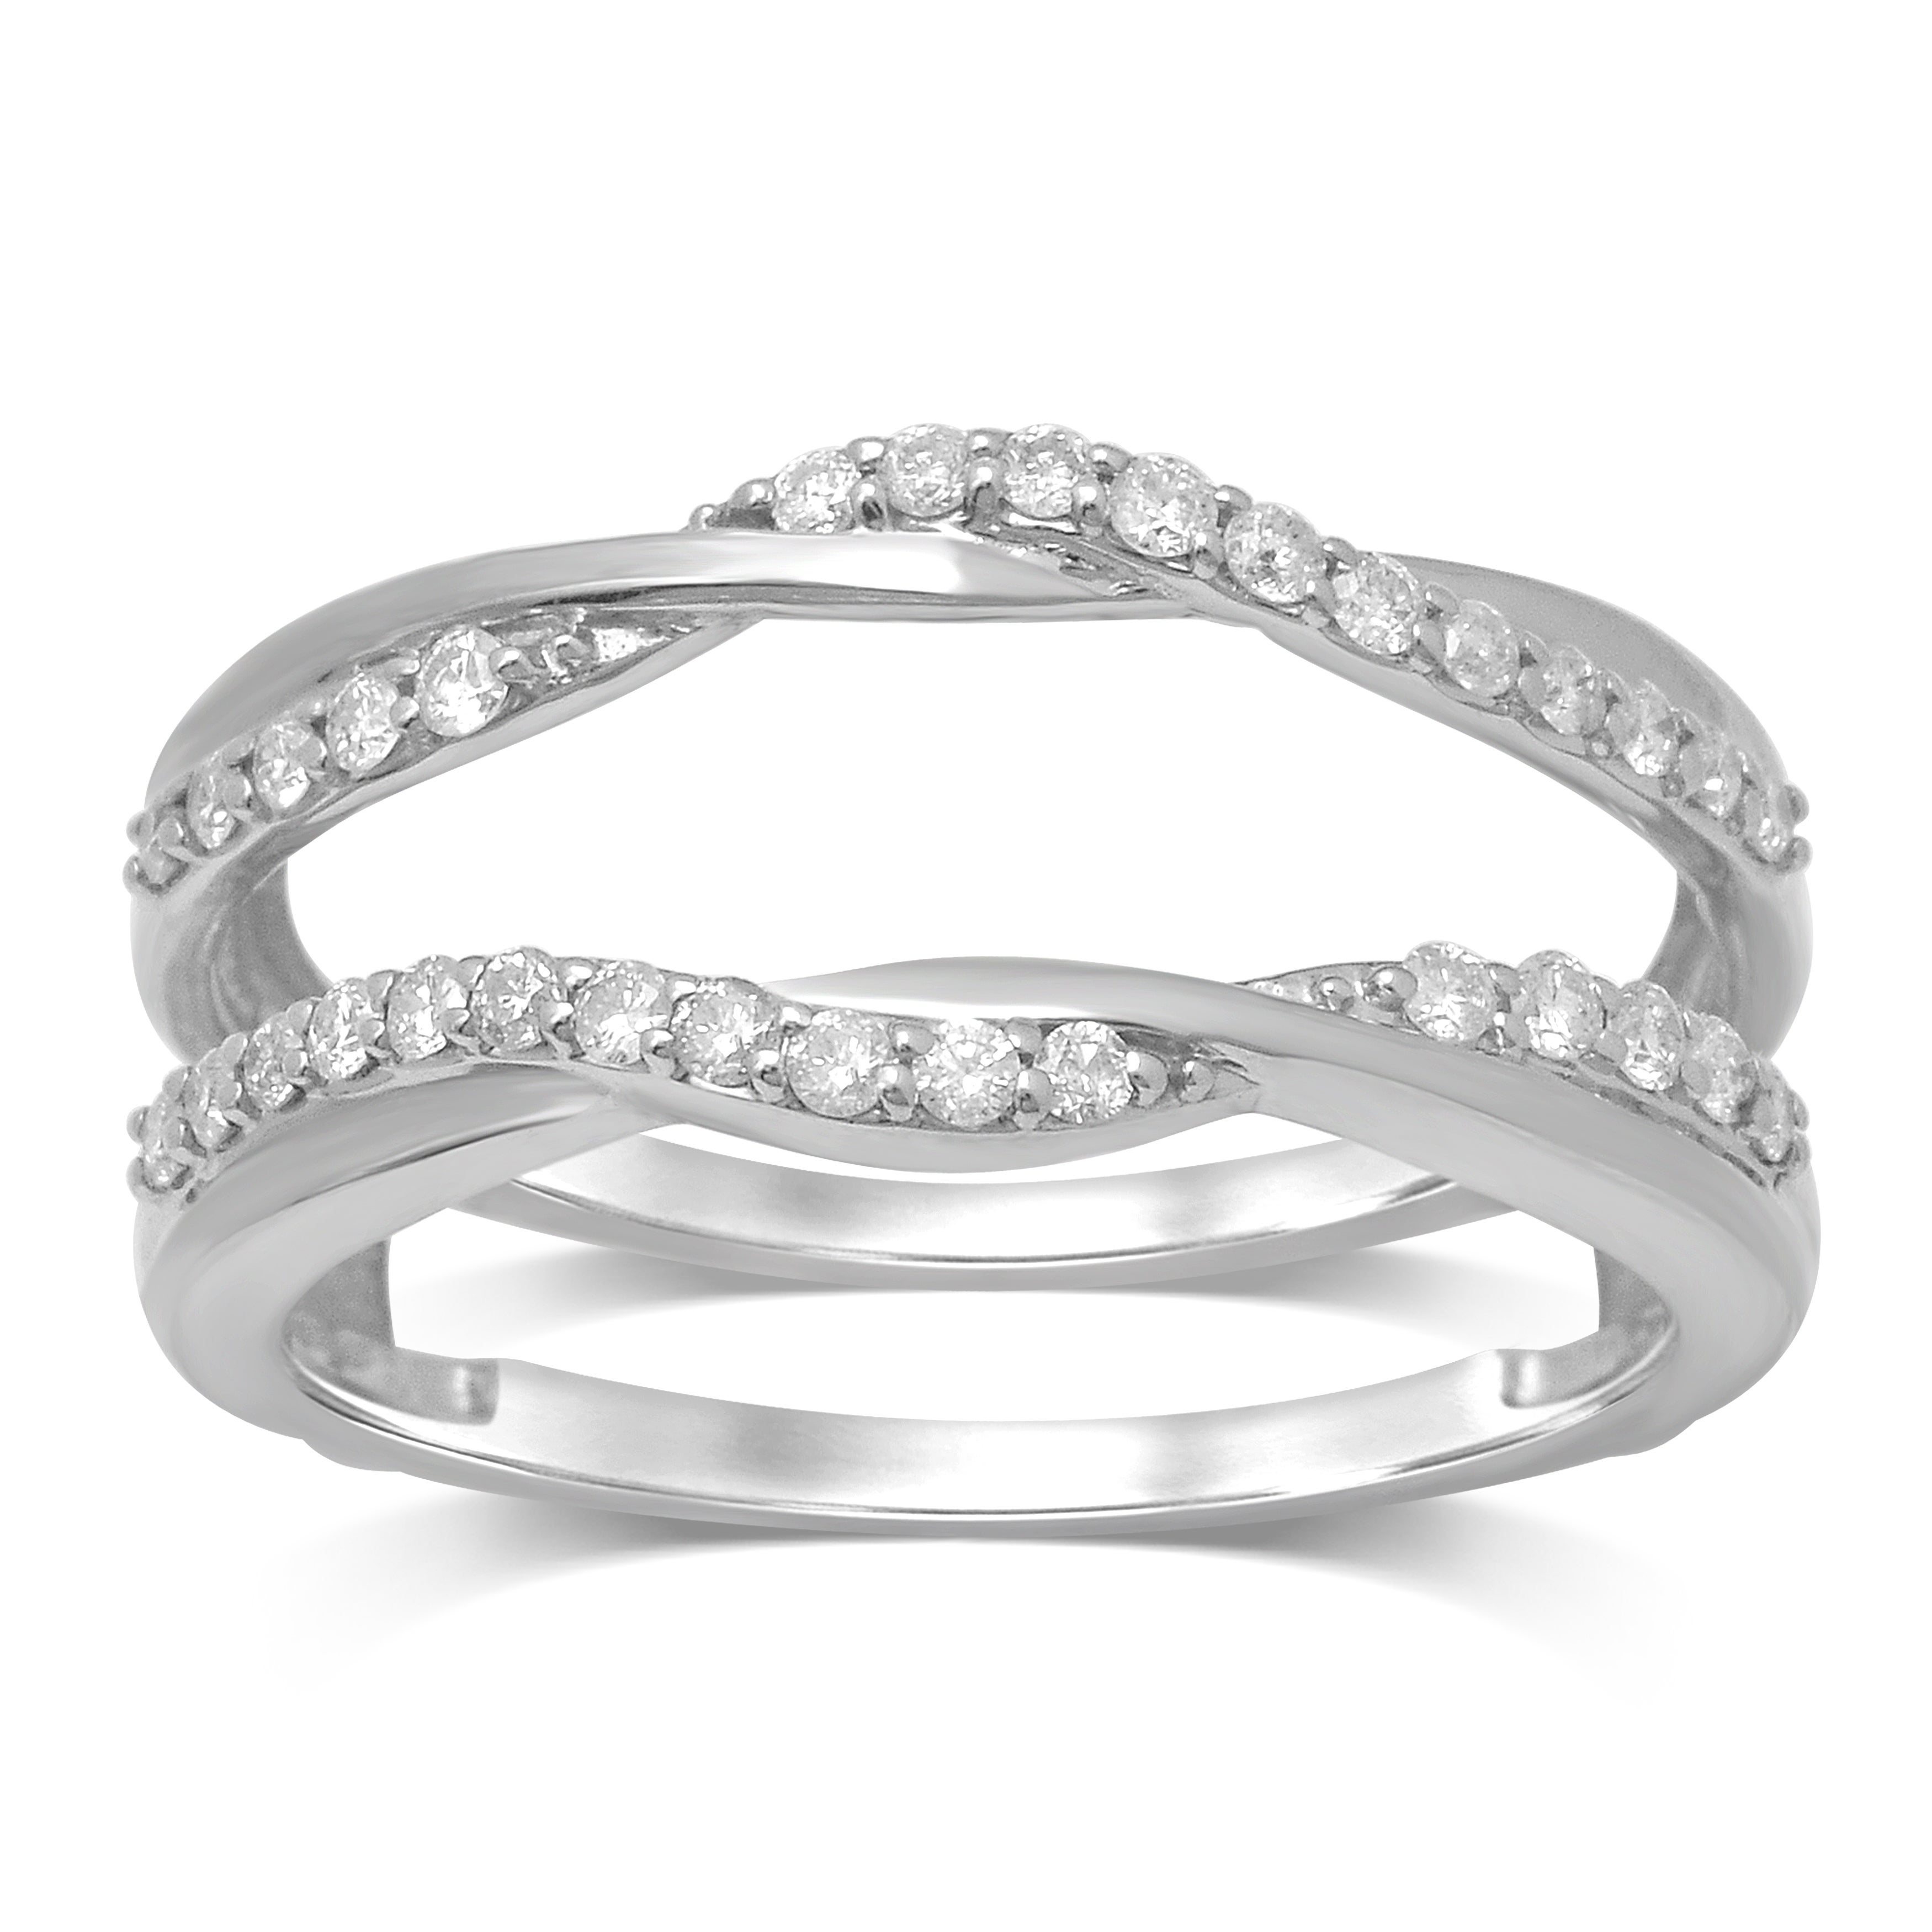 Buy Wedding Ring Wraps Guards Online At Overstock Our Best Rings Deals: Gles Chagne Wedding Rings At Websimilar.org